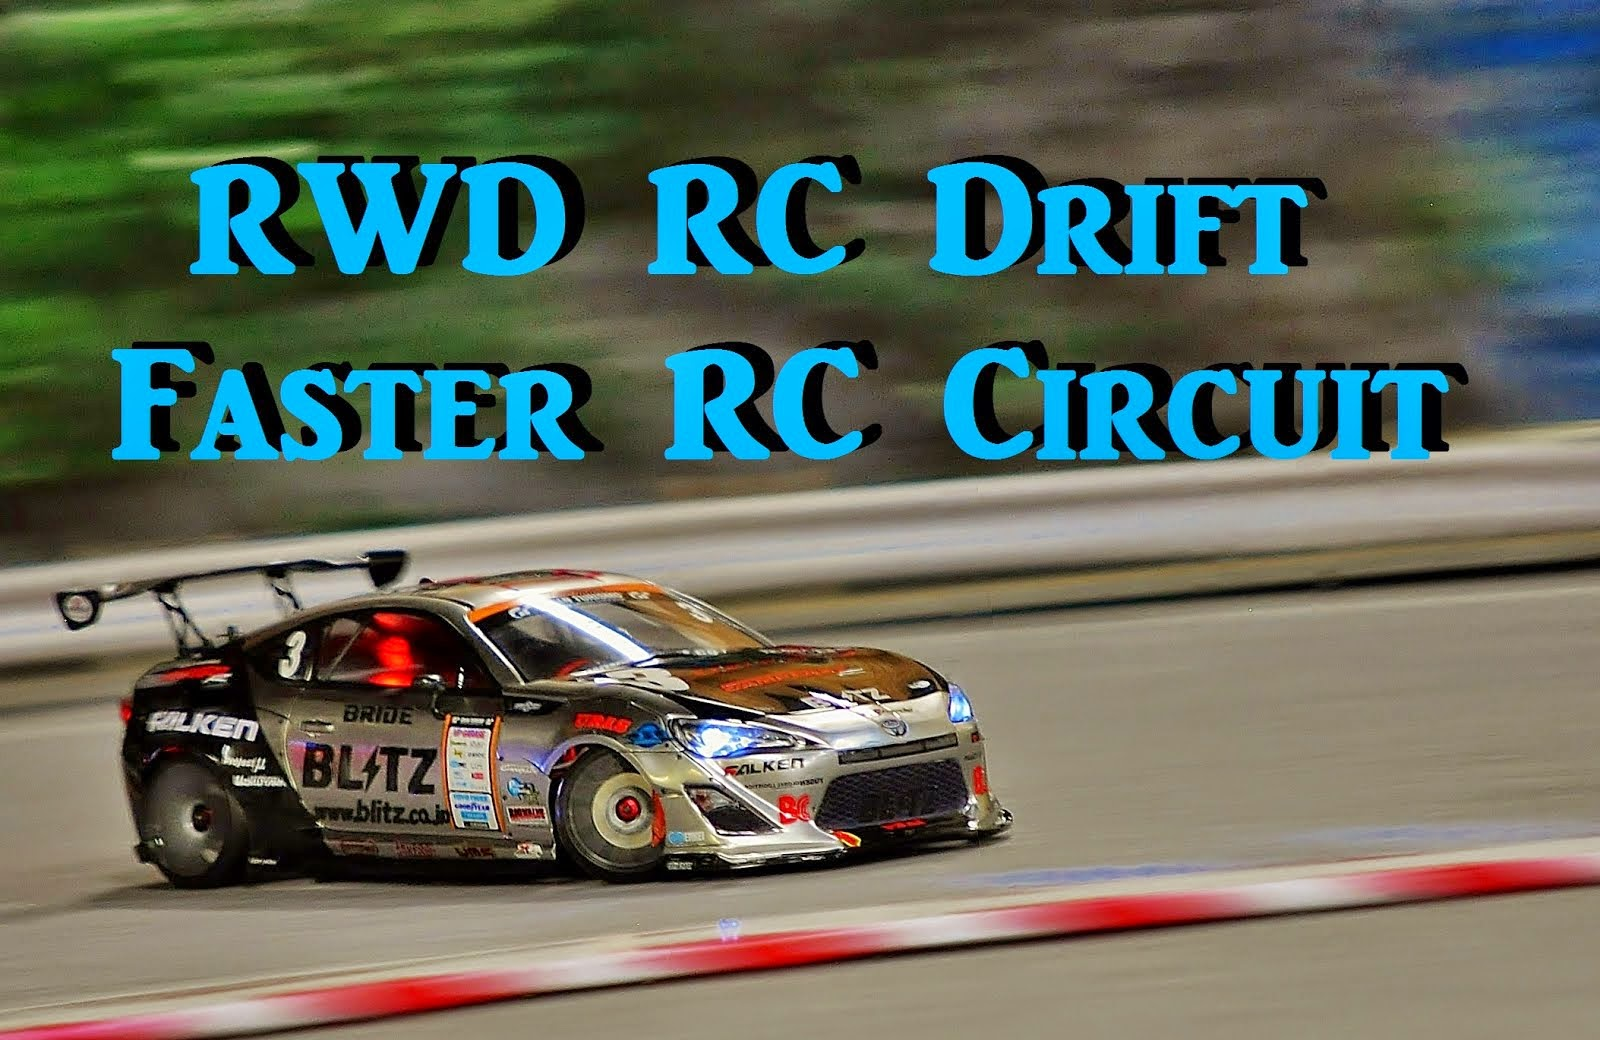 RWD drift video